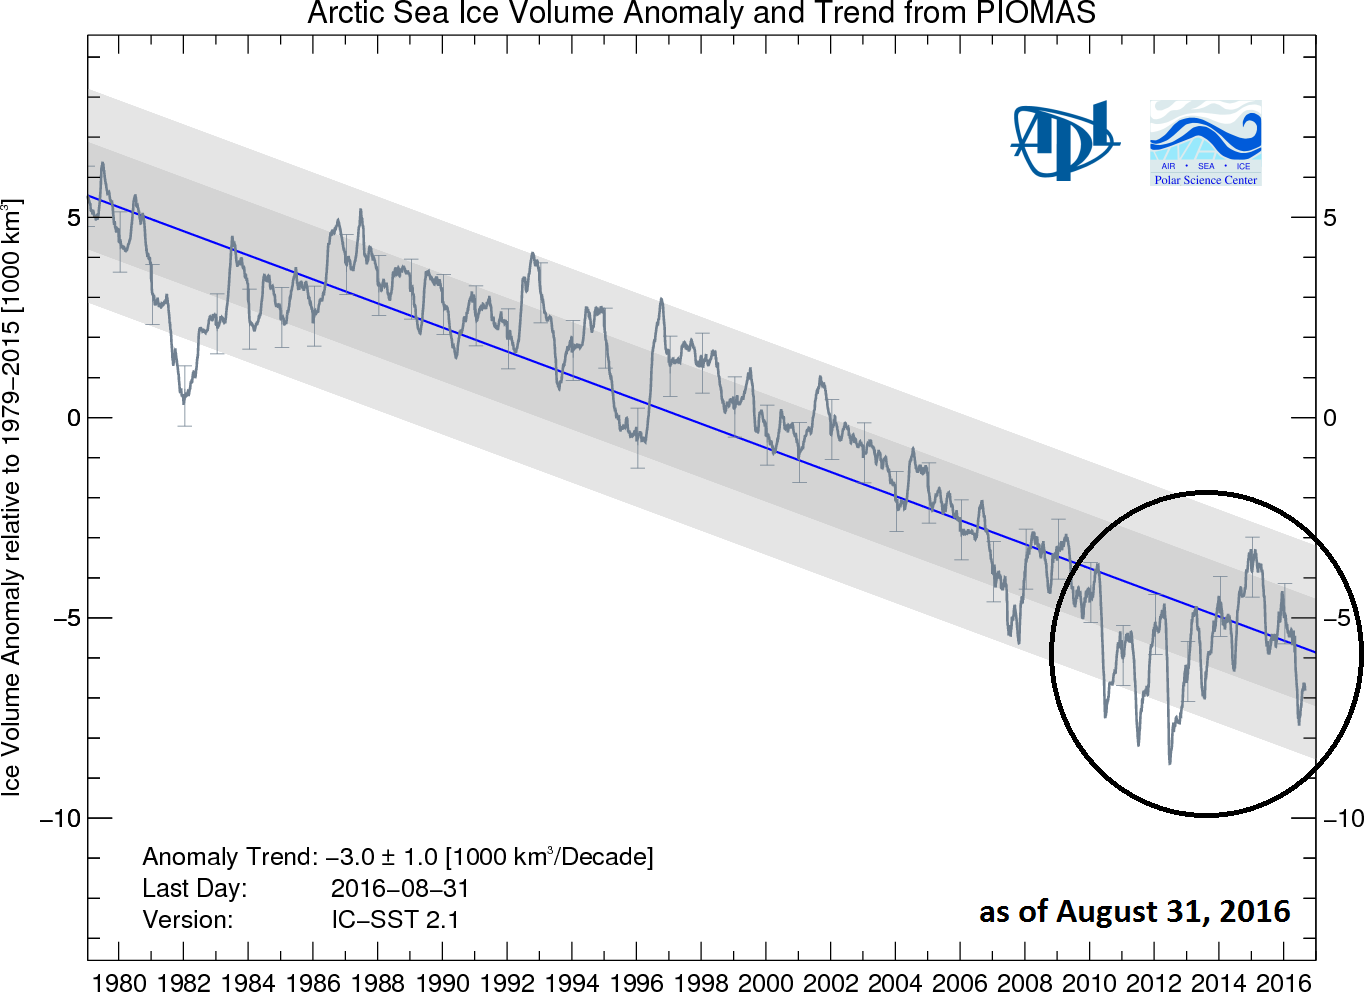 Source: Arctic sea ice volume anomaly and trend since 1979 from PIOMAS model, University of Washington;  http://psc.apl.uw.edu/wordpress/wp-content/uploads/schweiger/ice_volume/BPIOMASIceVolumeAnomalyCurrentV2.1.png